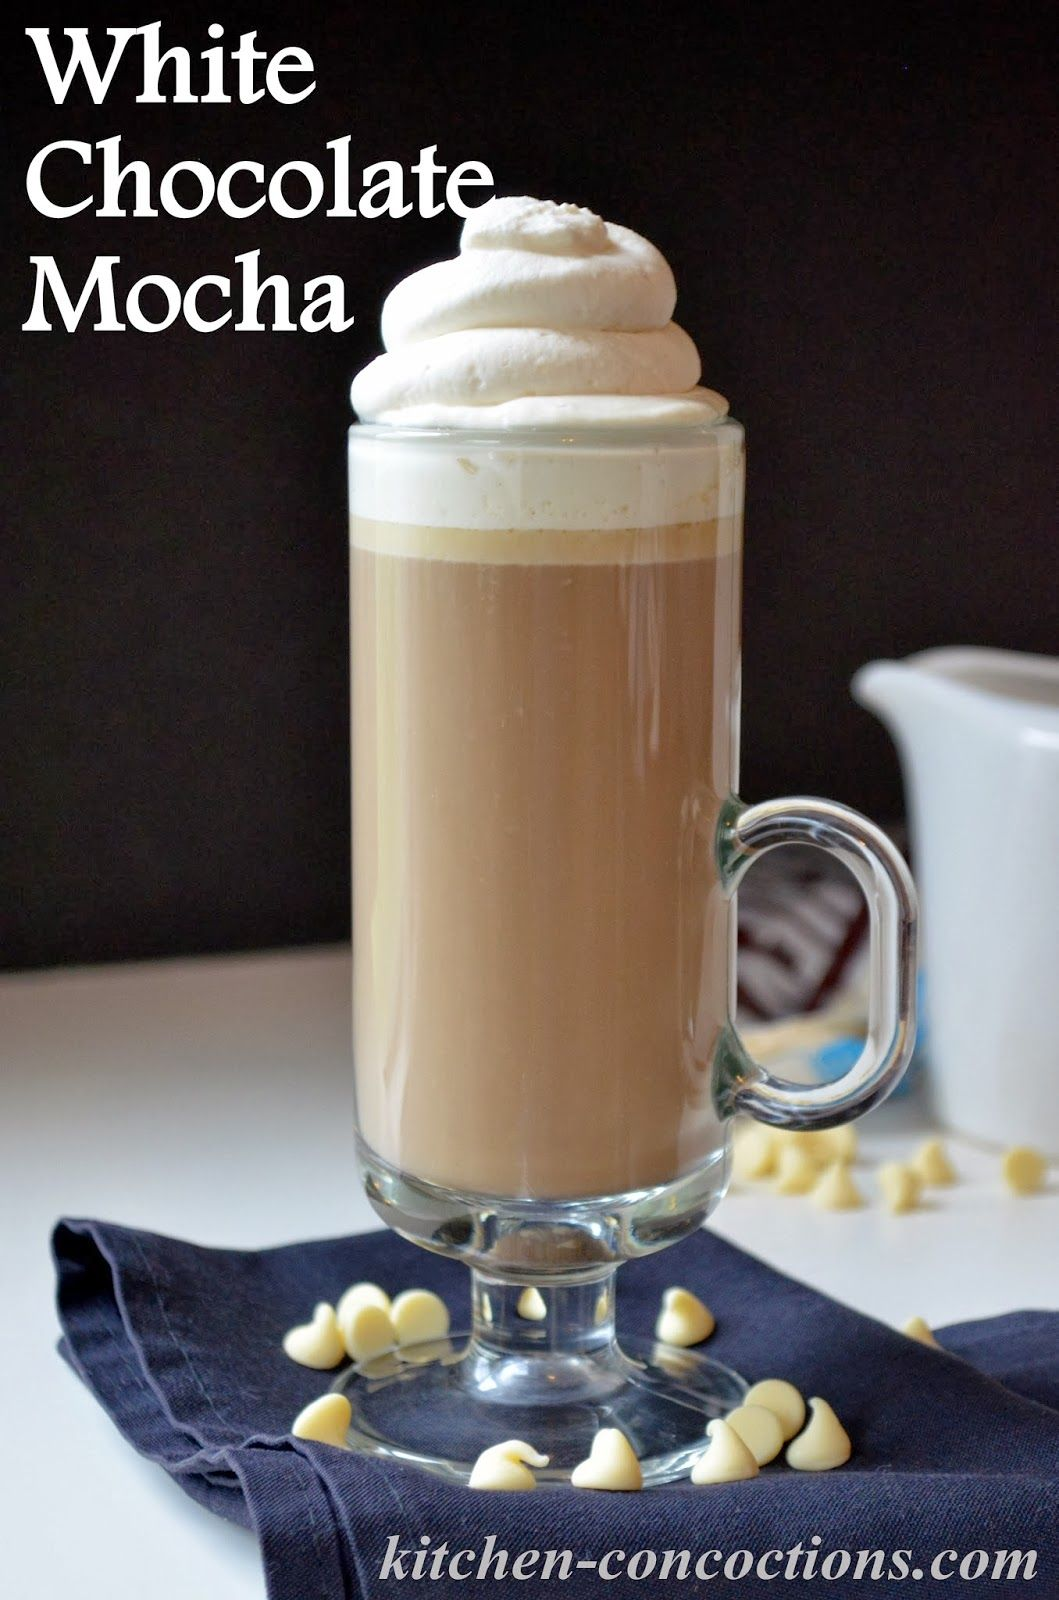 10 best images about Drinks on Pinterest | Spinach, Harry potter ...